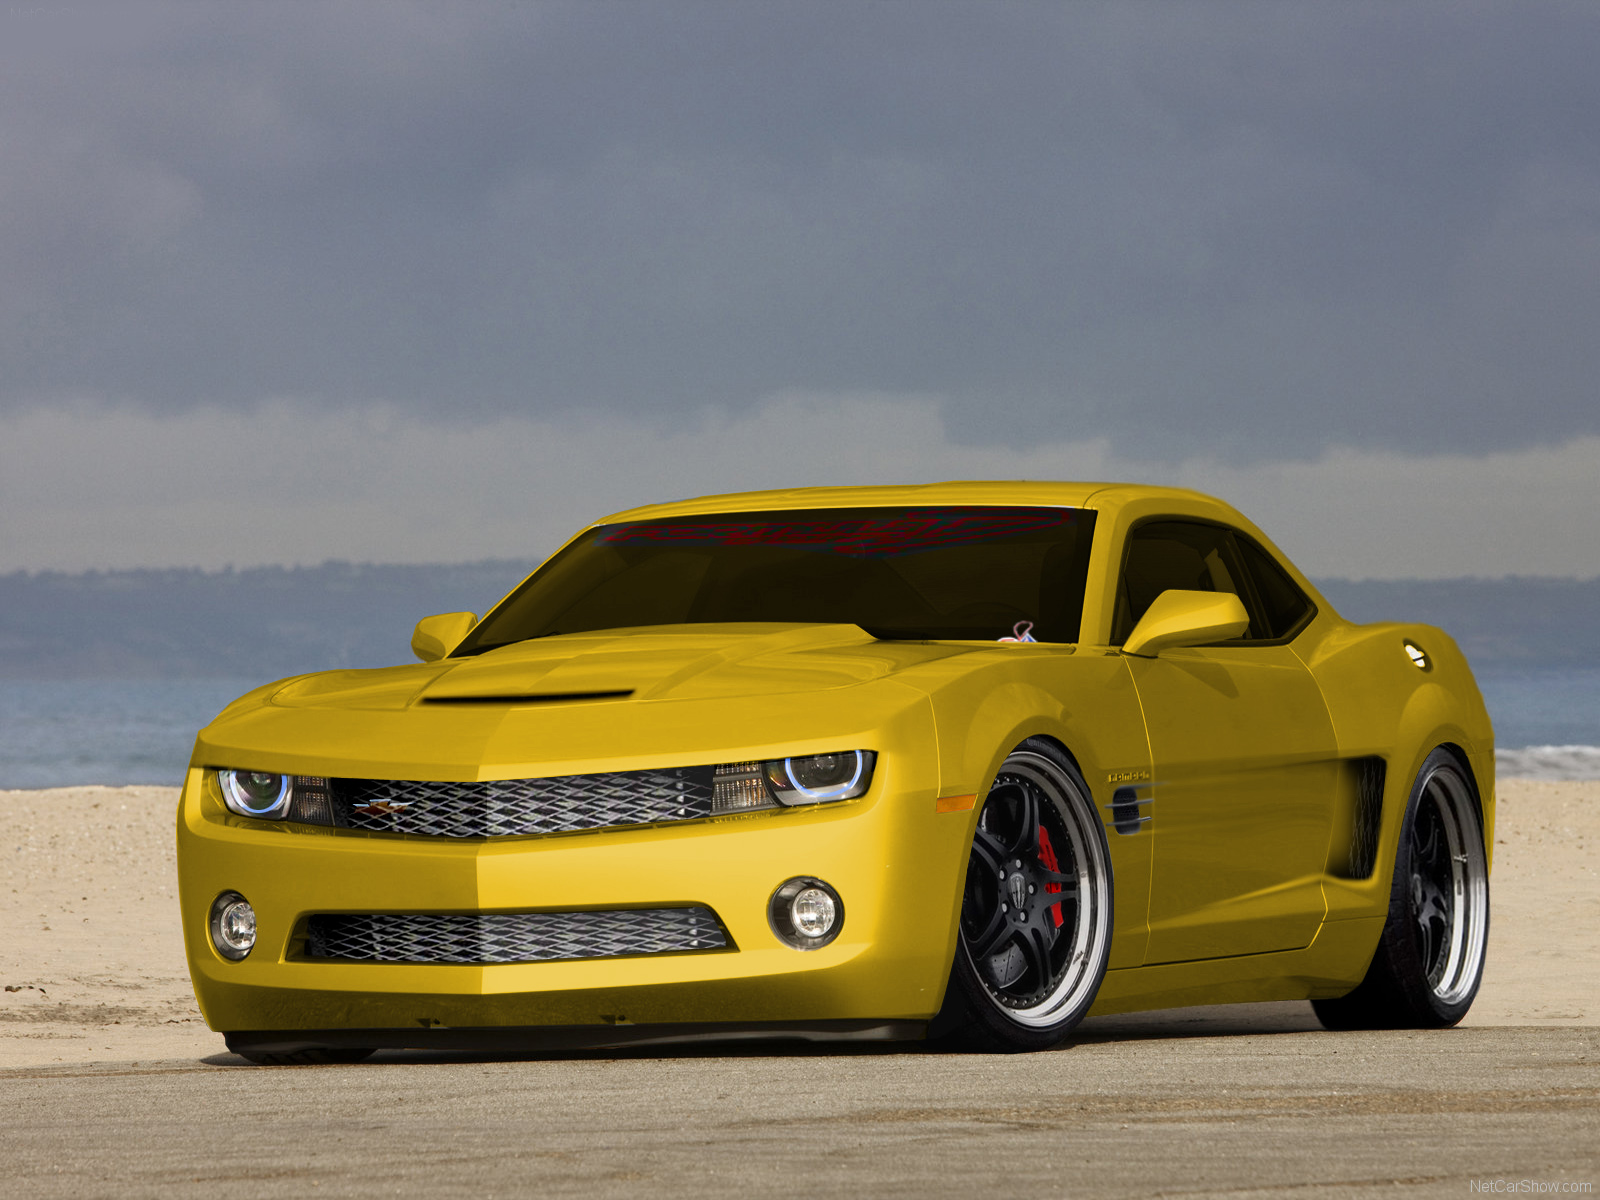 Speedo Car 2010 Chevrolet Camaro New Cars Car Reviews